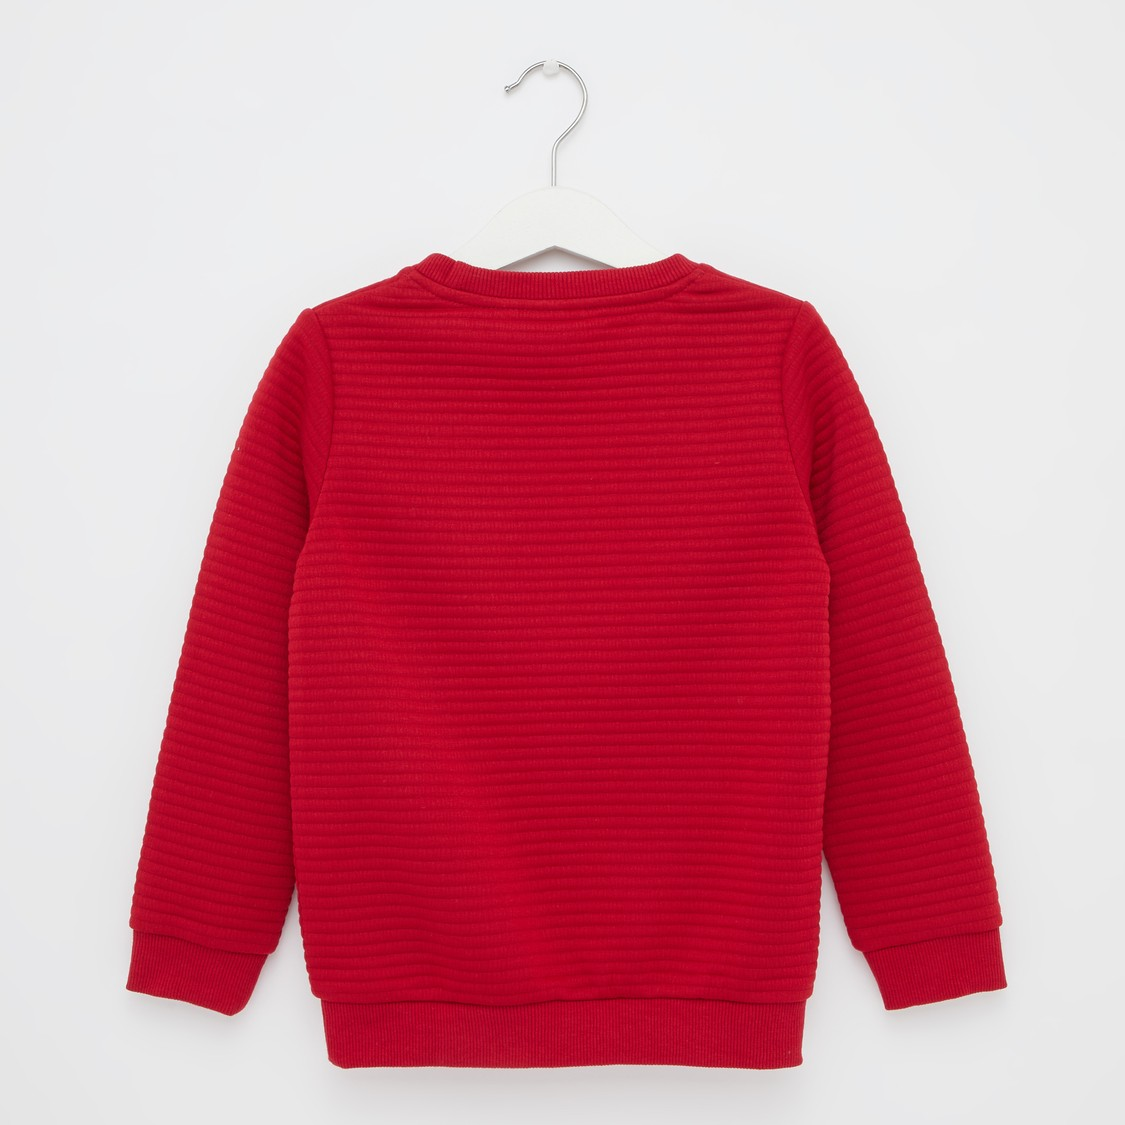 Spider-Man Embossed Print Sweatshirt with Round Neck and Long Sleeves